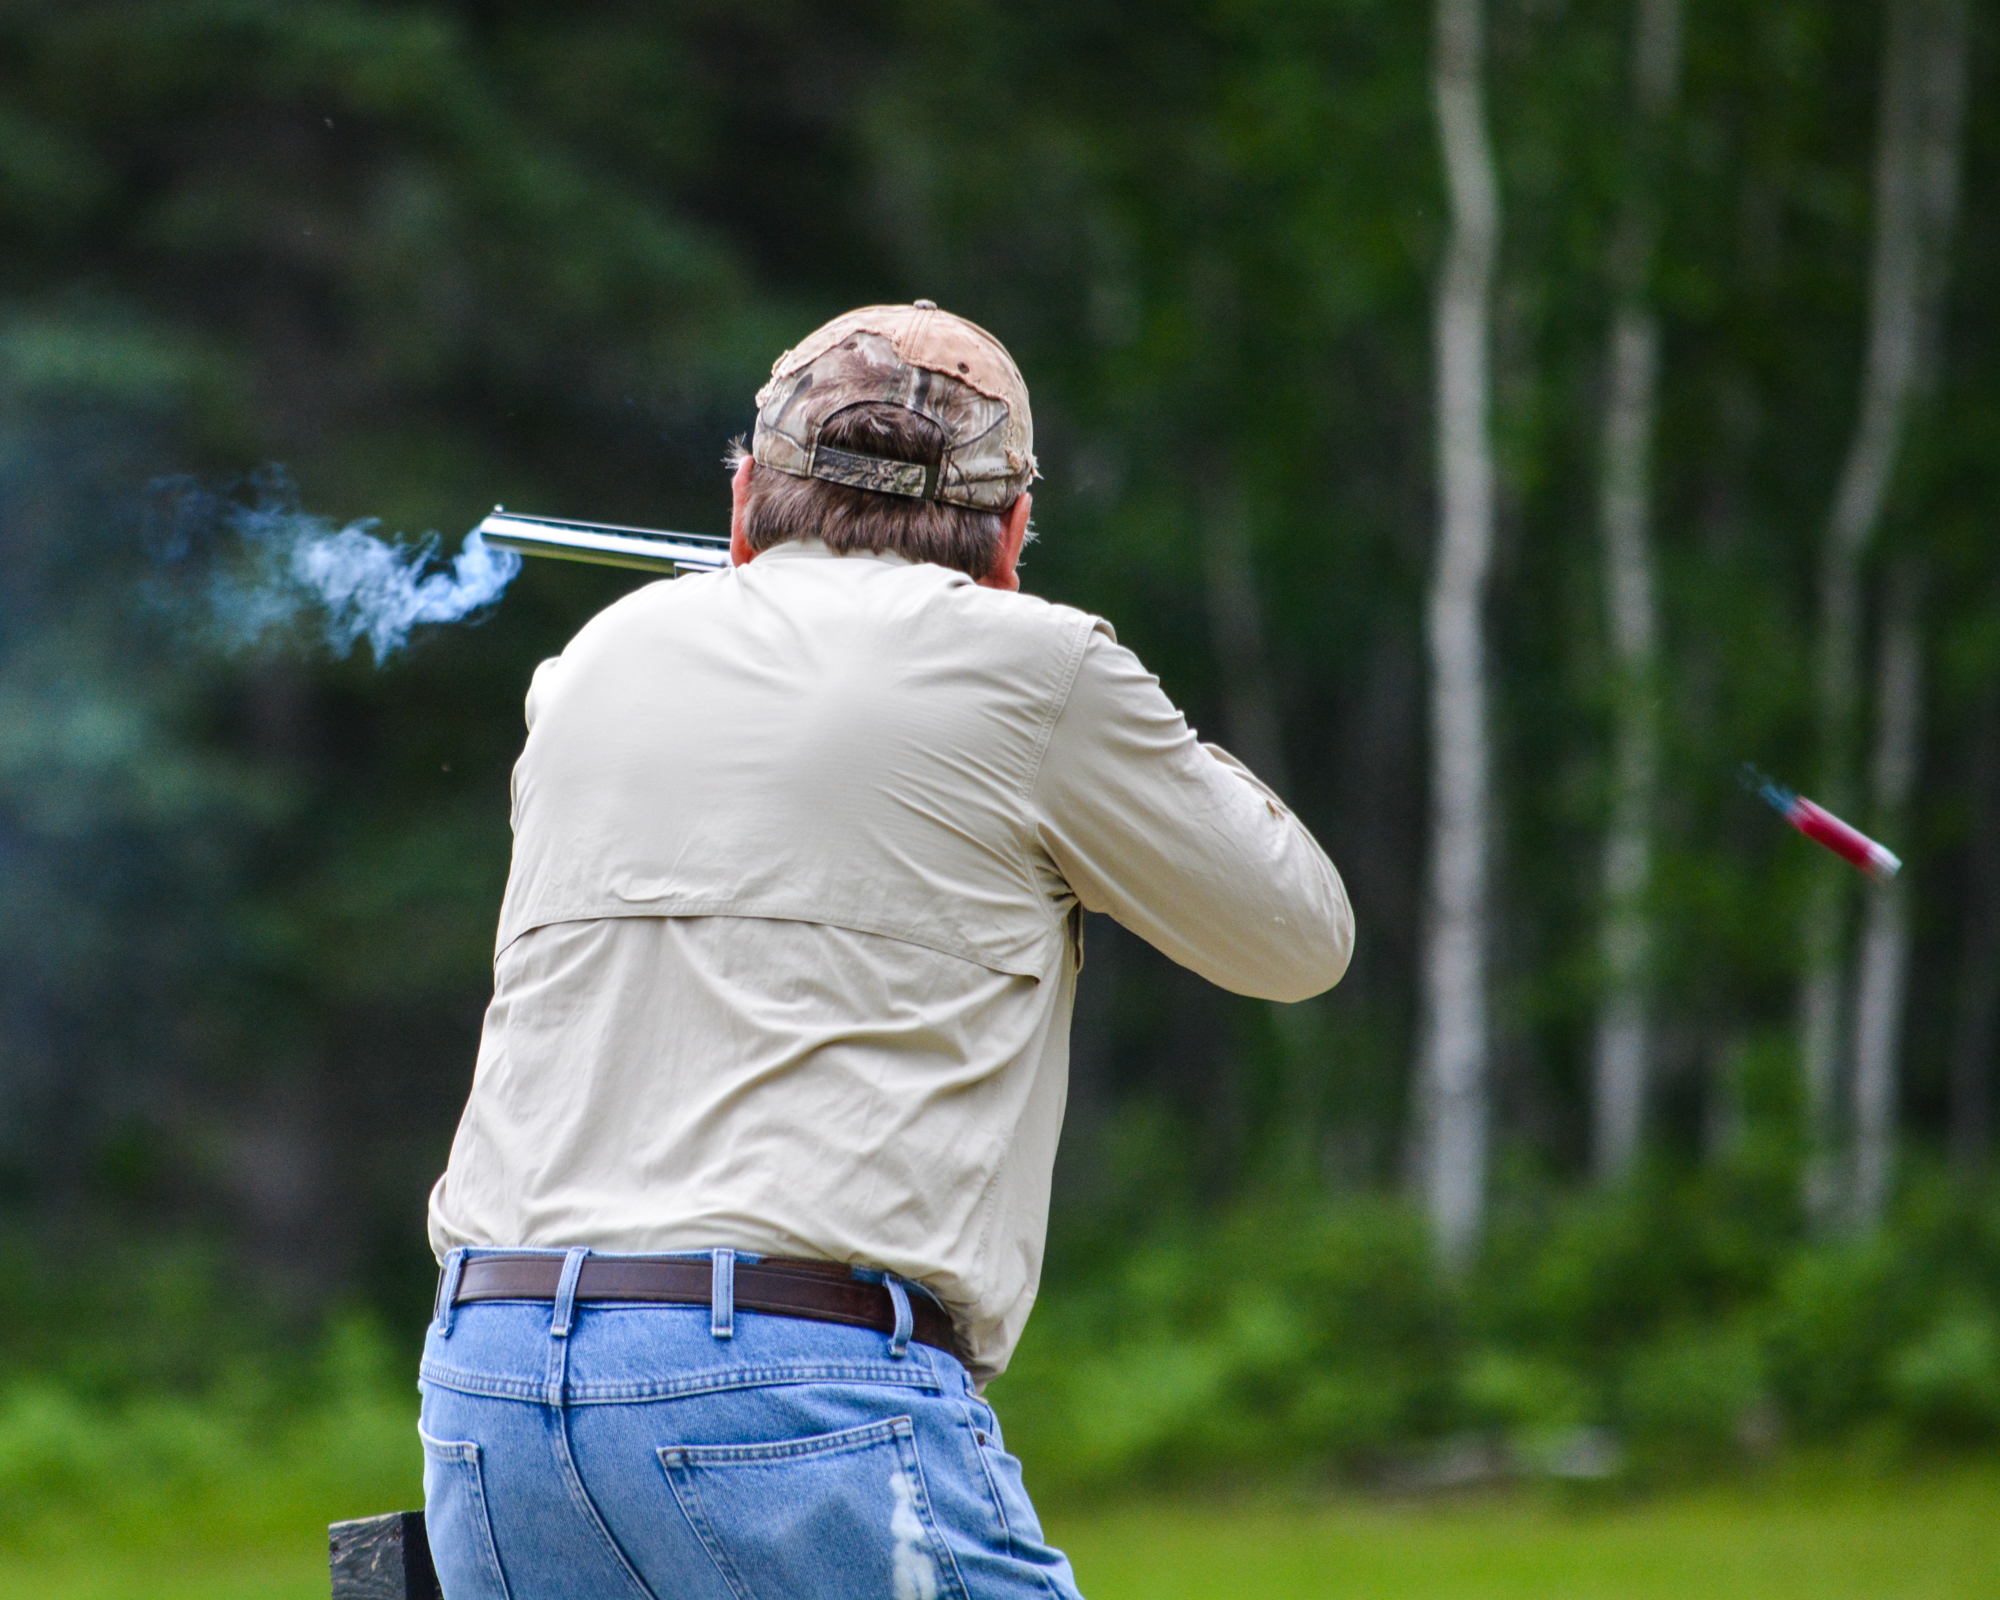 A shot goes off at the North Beltrami Sportsmens Club.